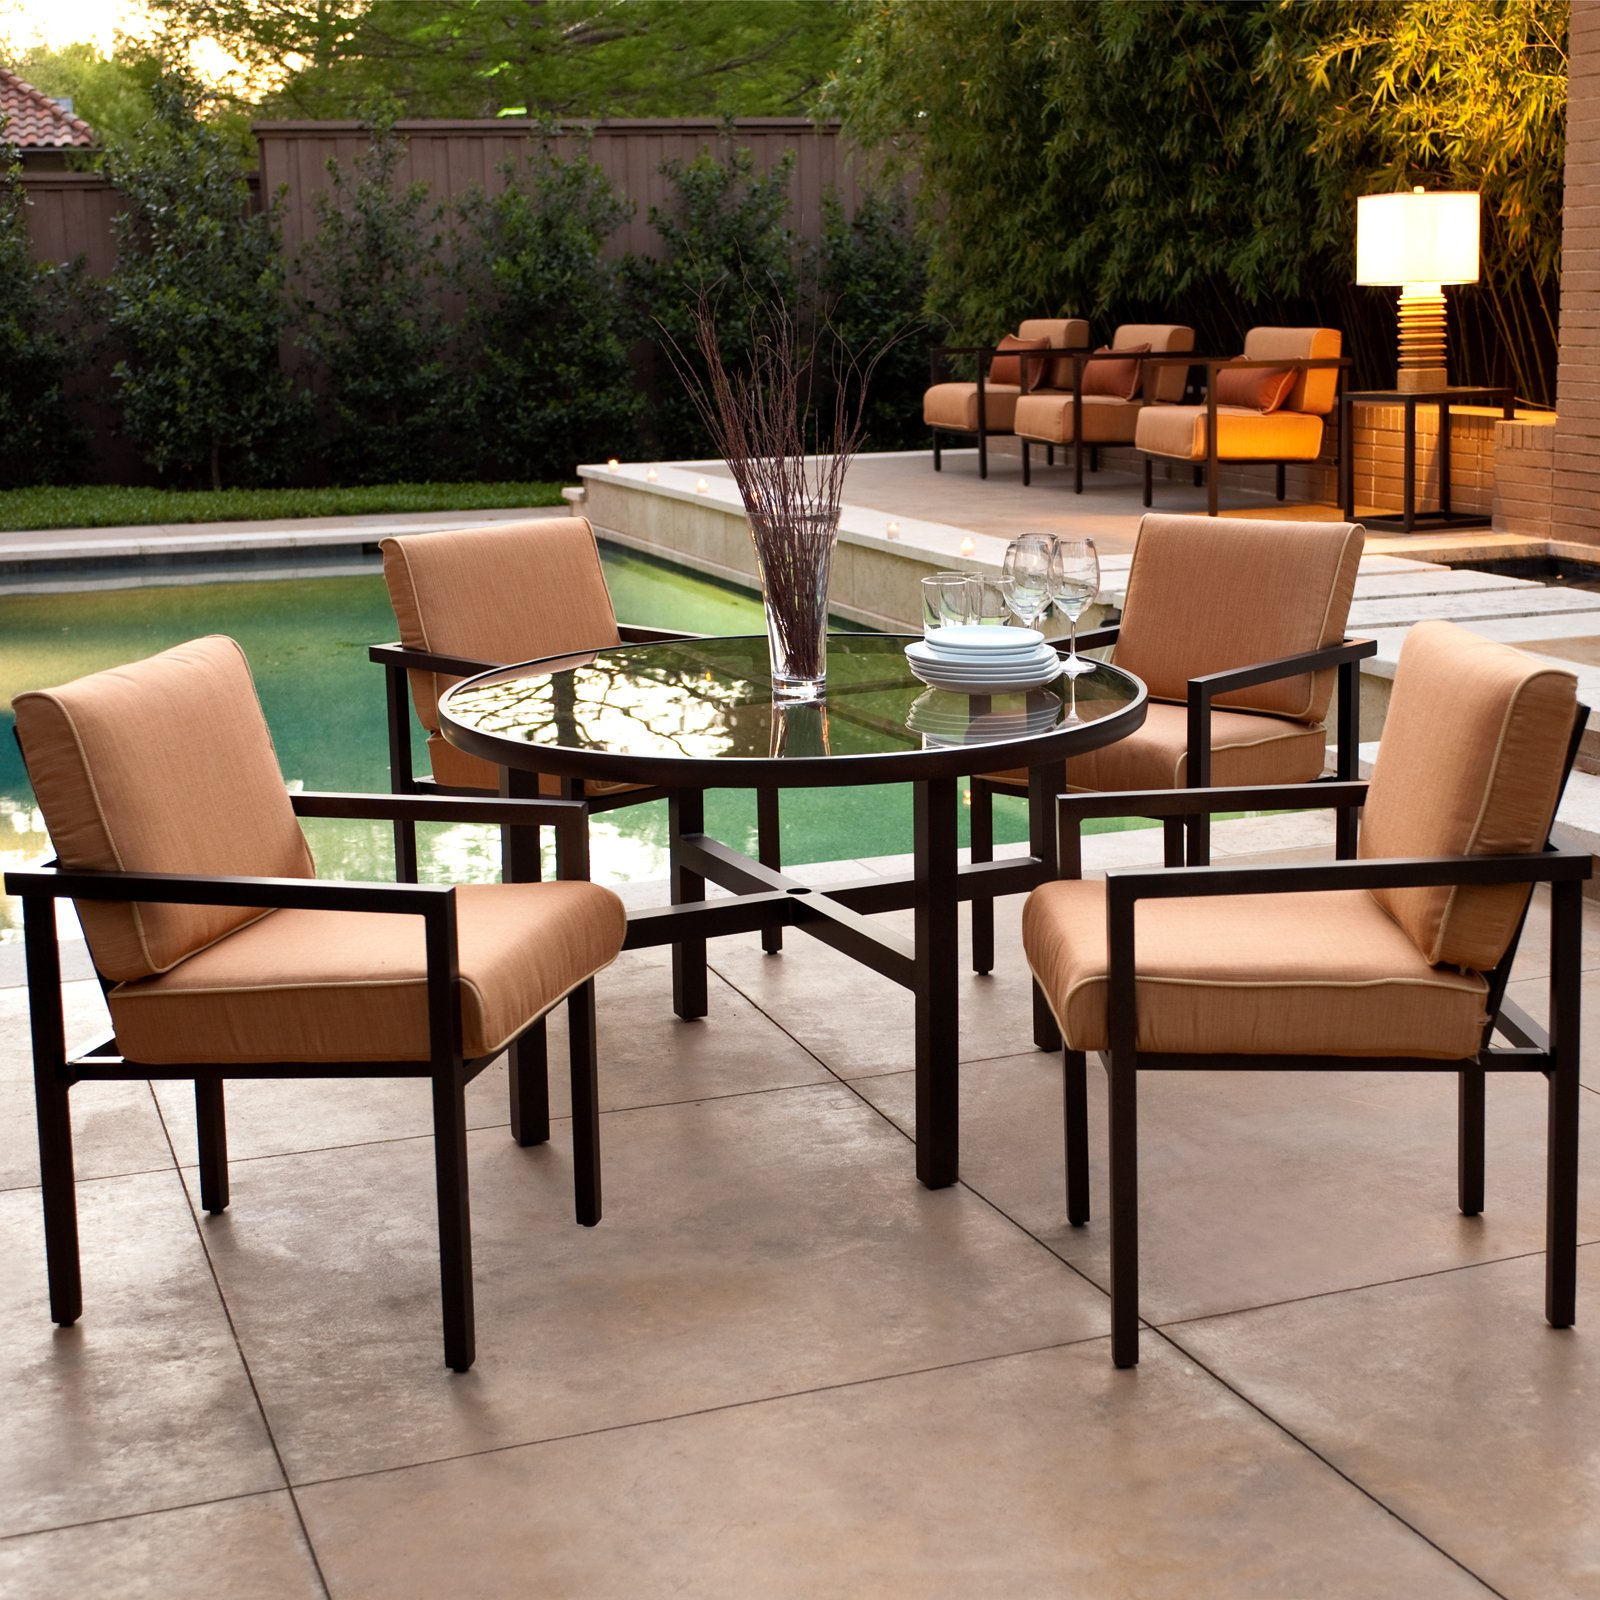 Places to go for affordable modern outdoor furniture for Affordable modern dining sets